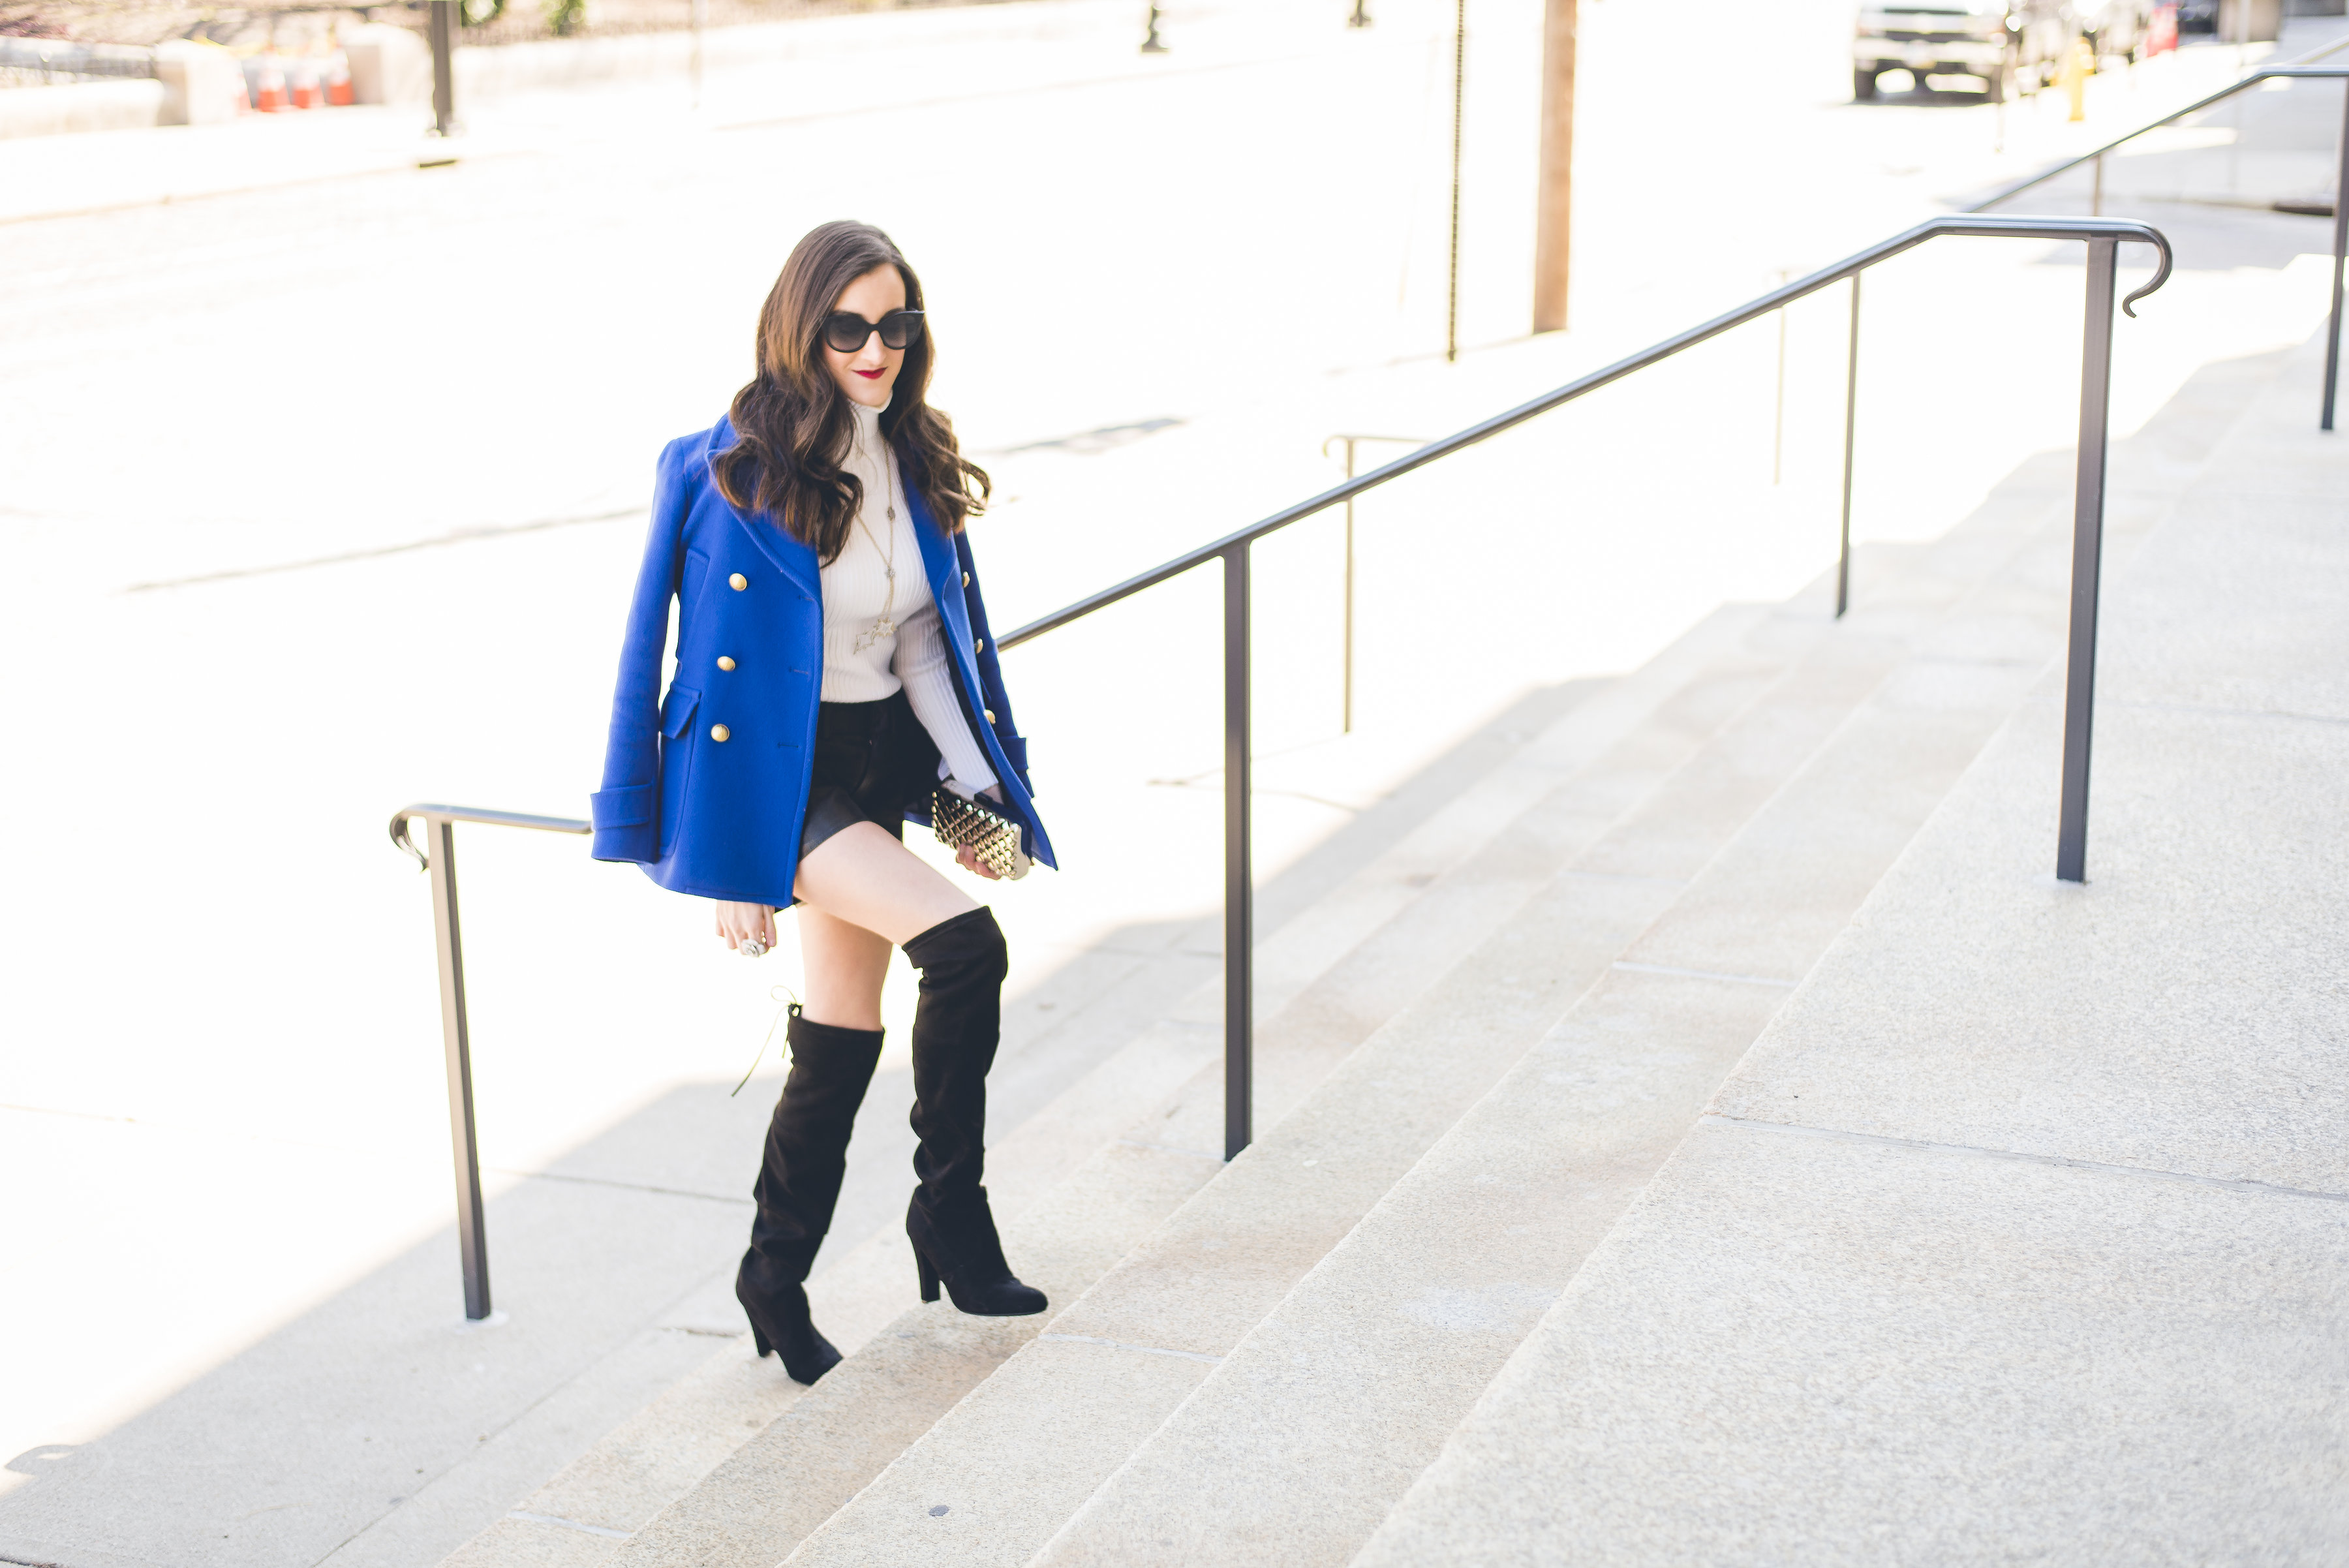 Outfits with over the knee boots and a blue coat